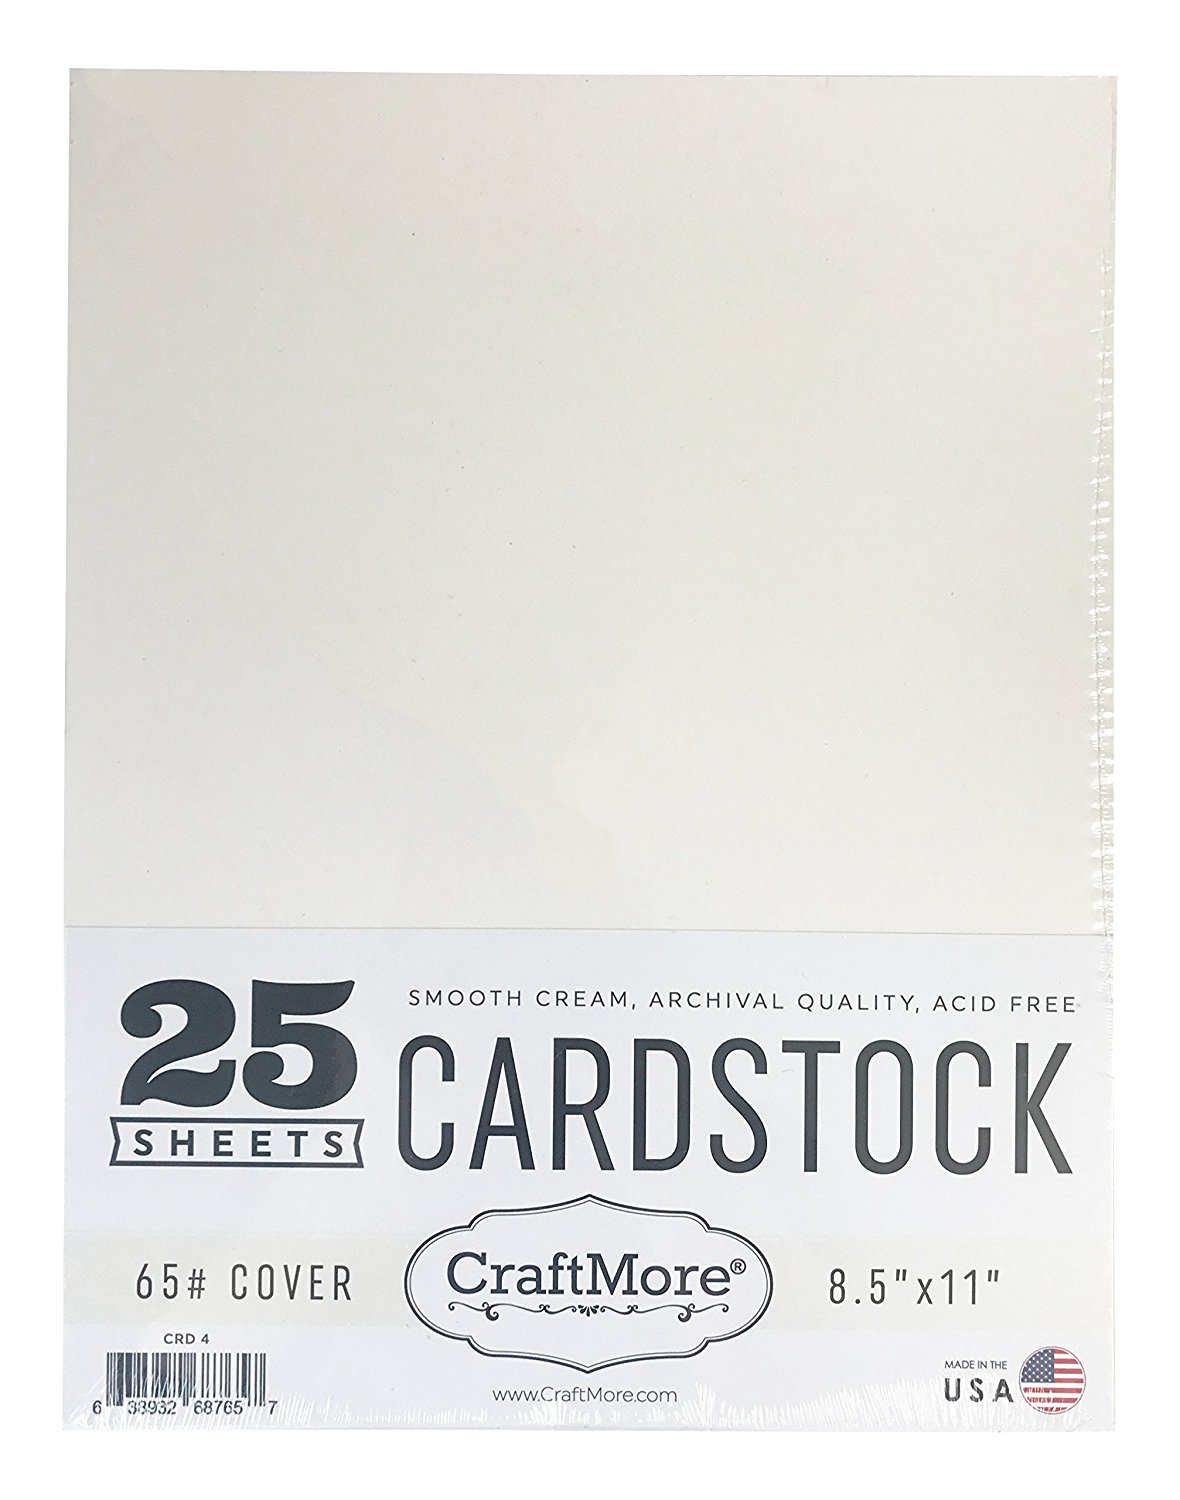 12x12 Black CraftMore Cardstock Paper Value Pack Made in USA 25 Sheets